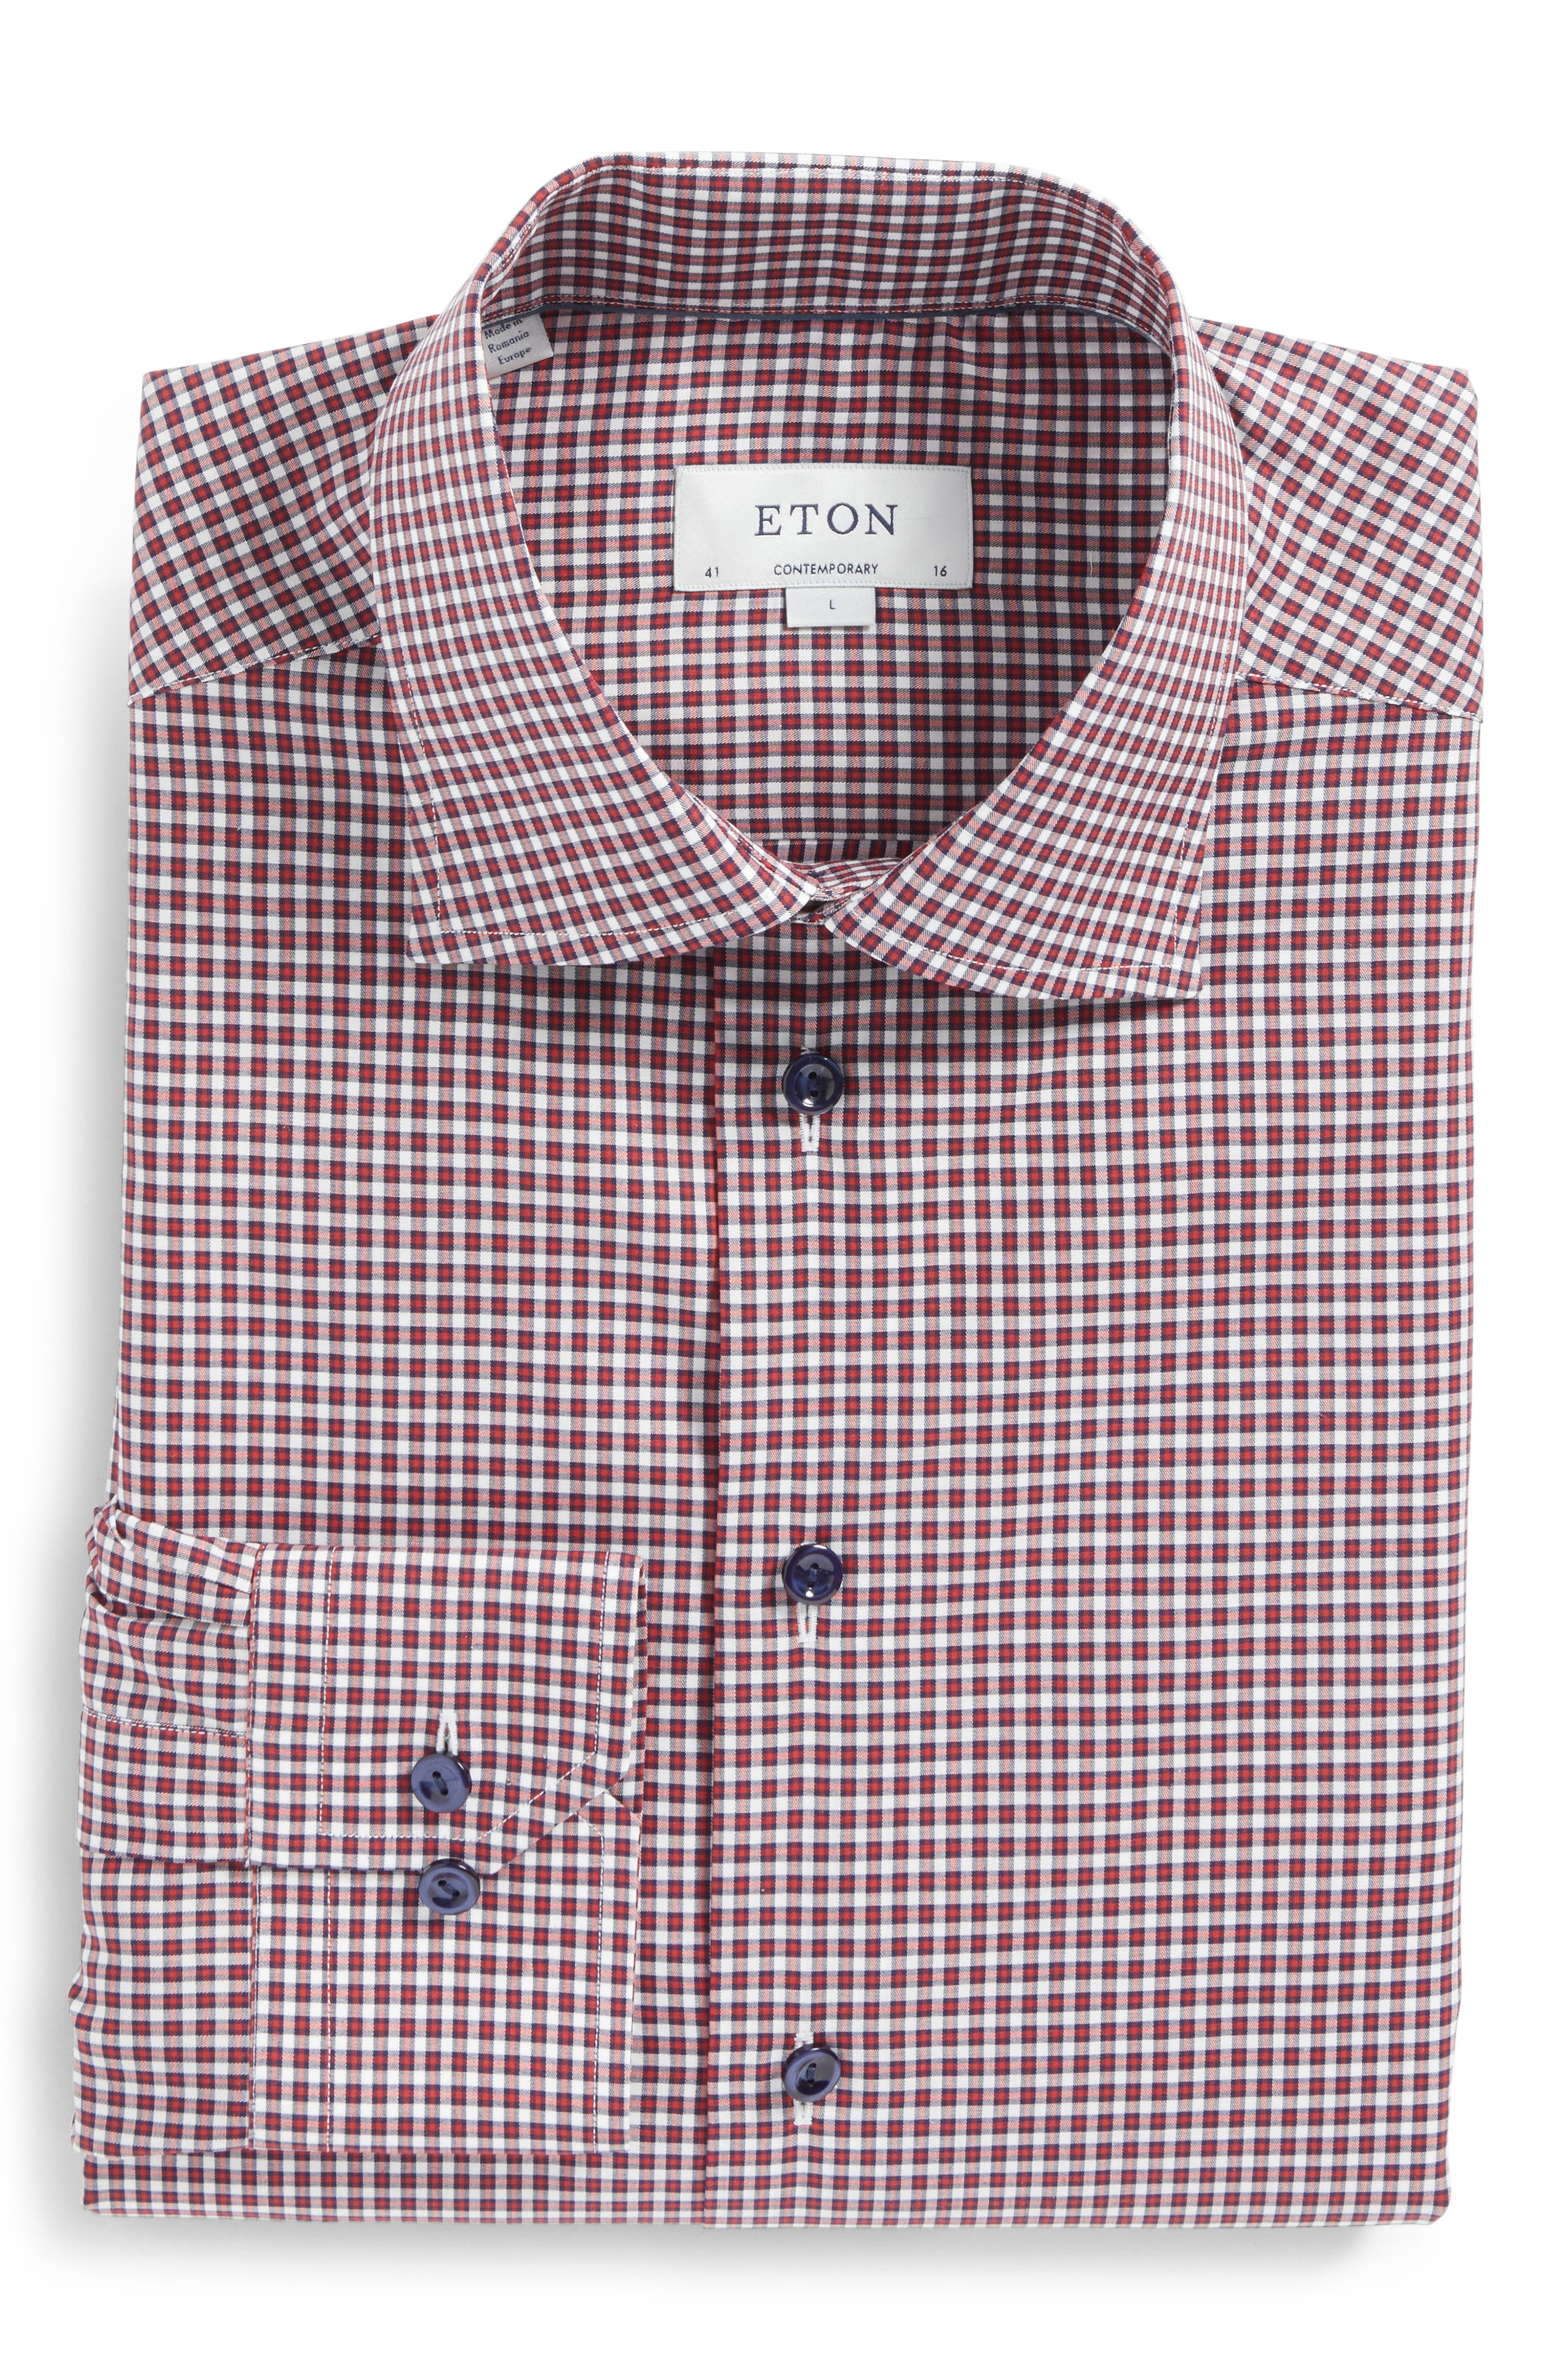 Contemporary Fit Check Dress Shirt,                         Main,                         color, Pink/ Red